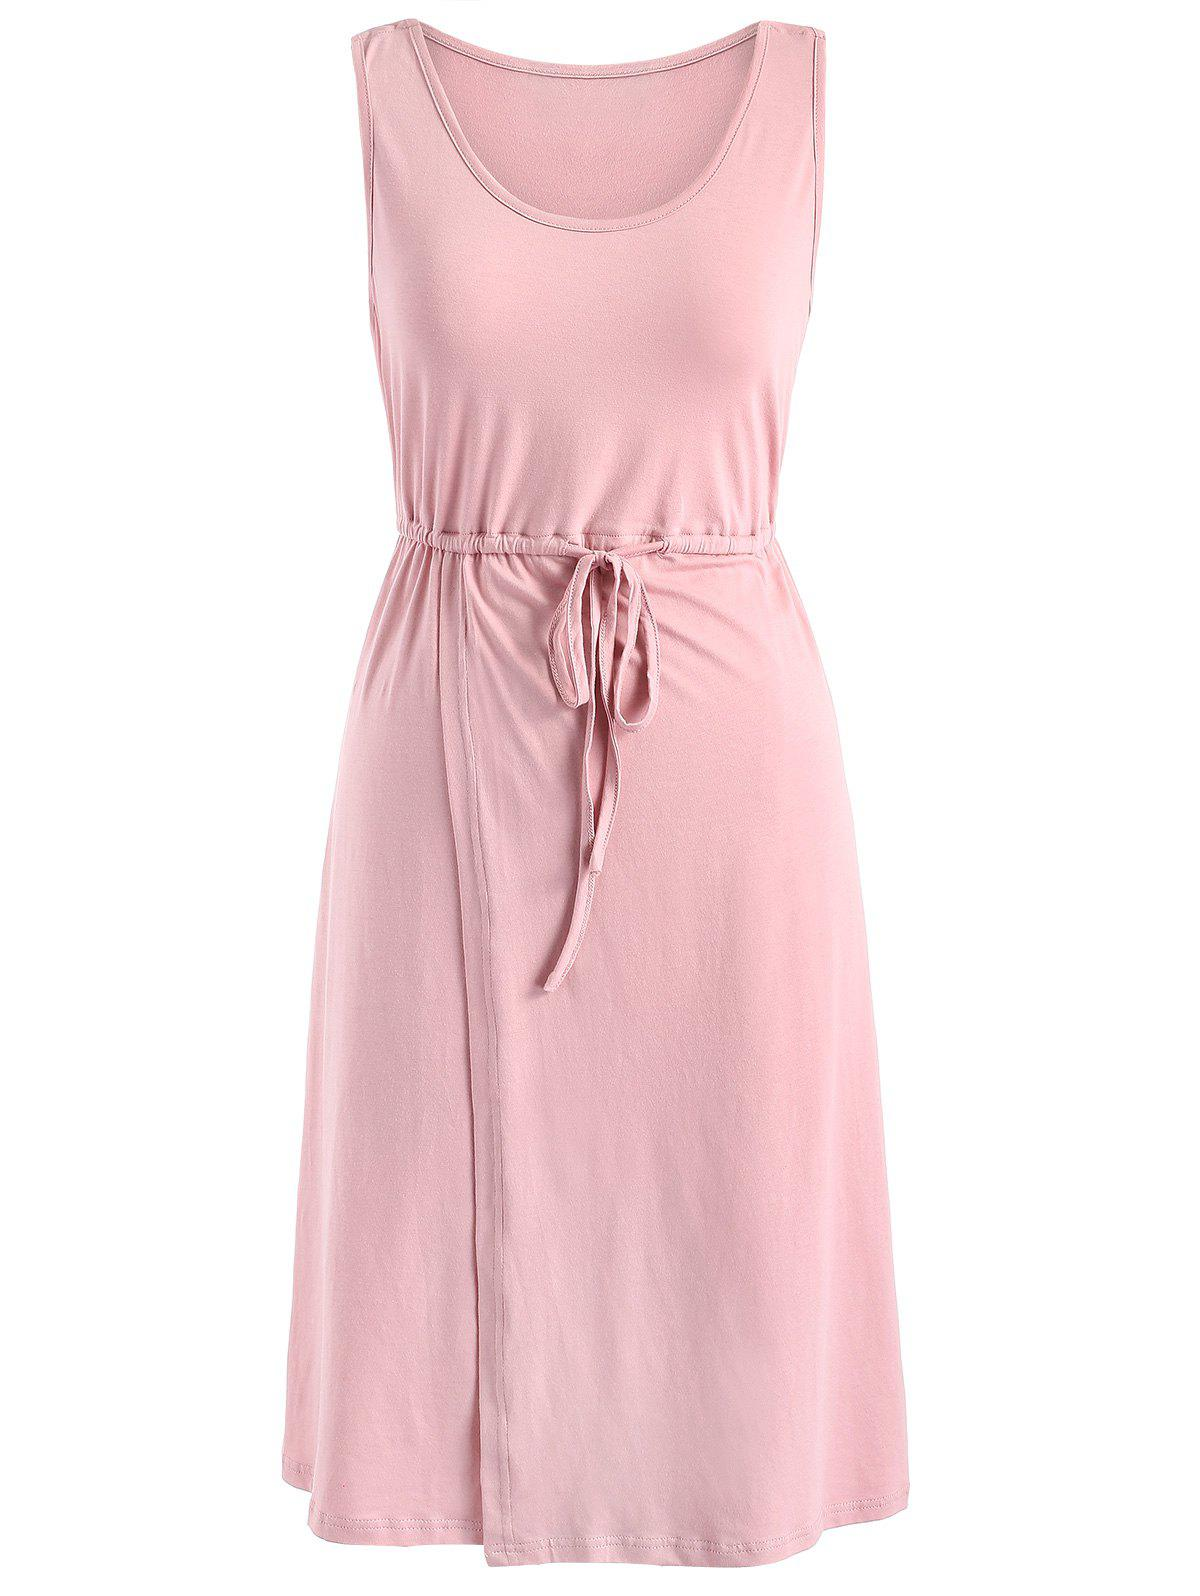 Fashion Sleeveless Drawstring Maternity Dress